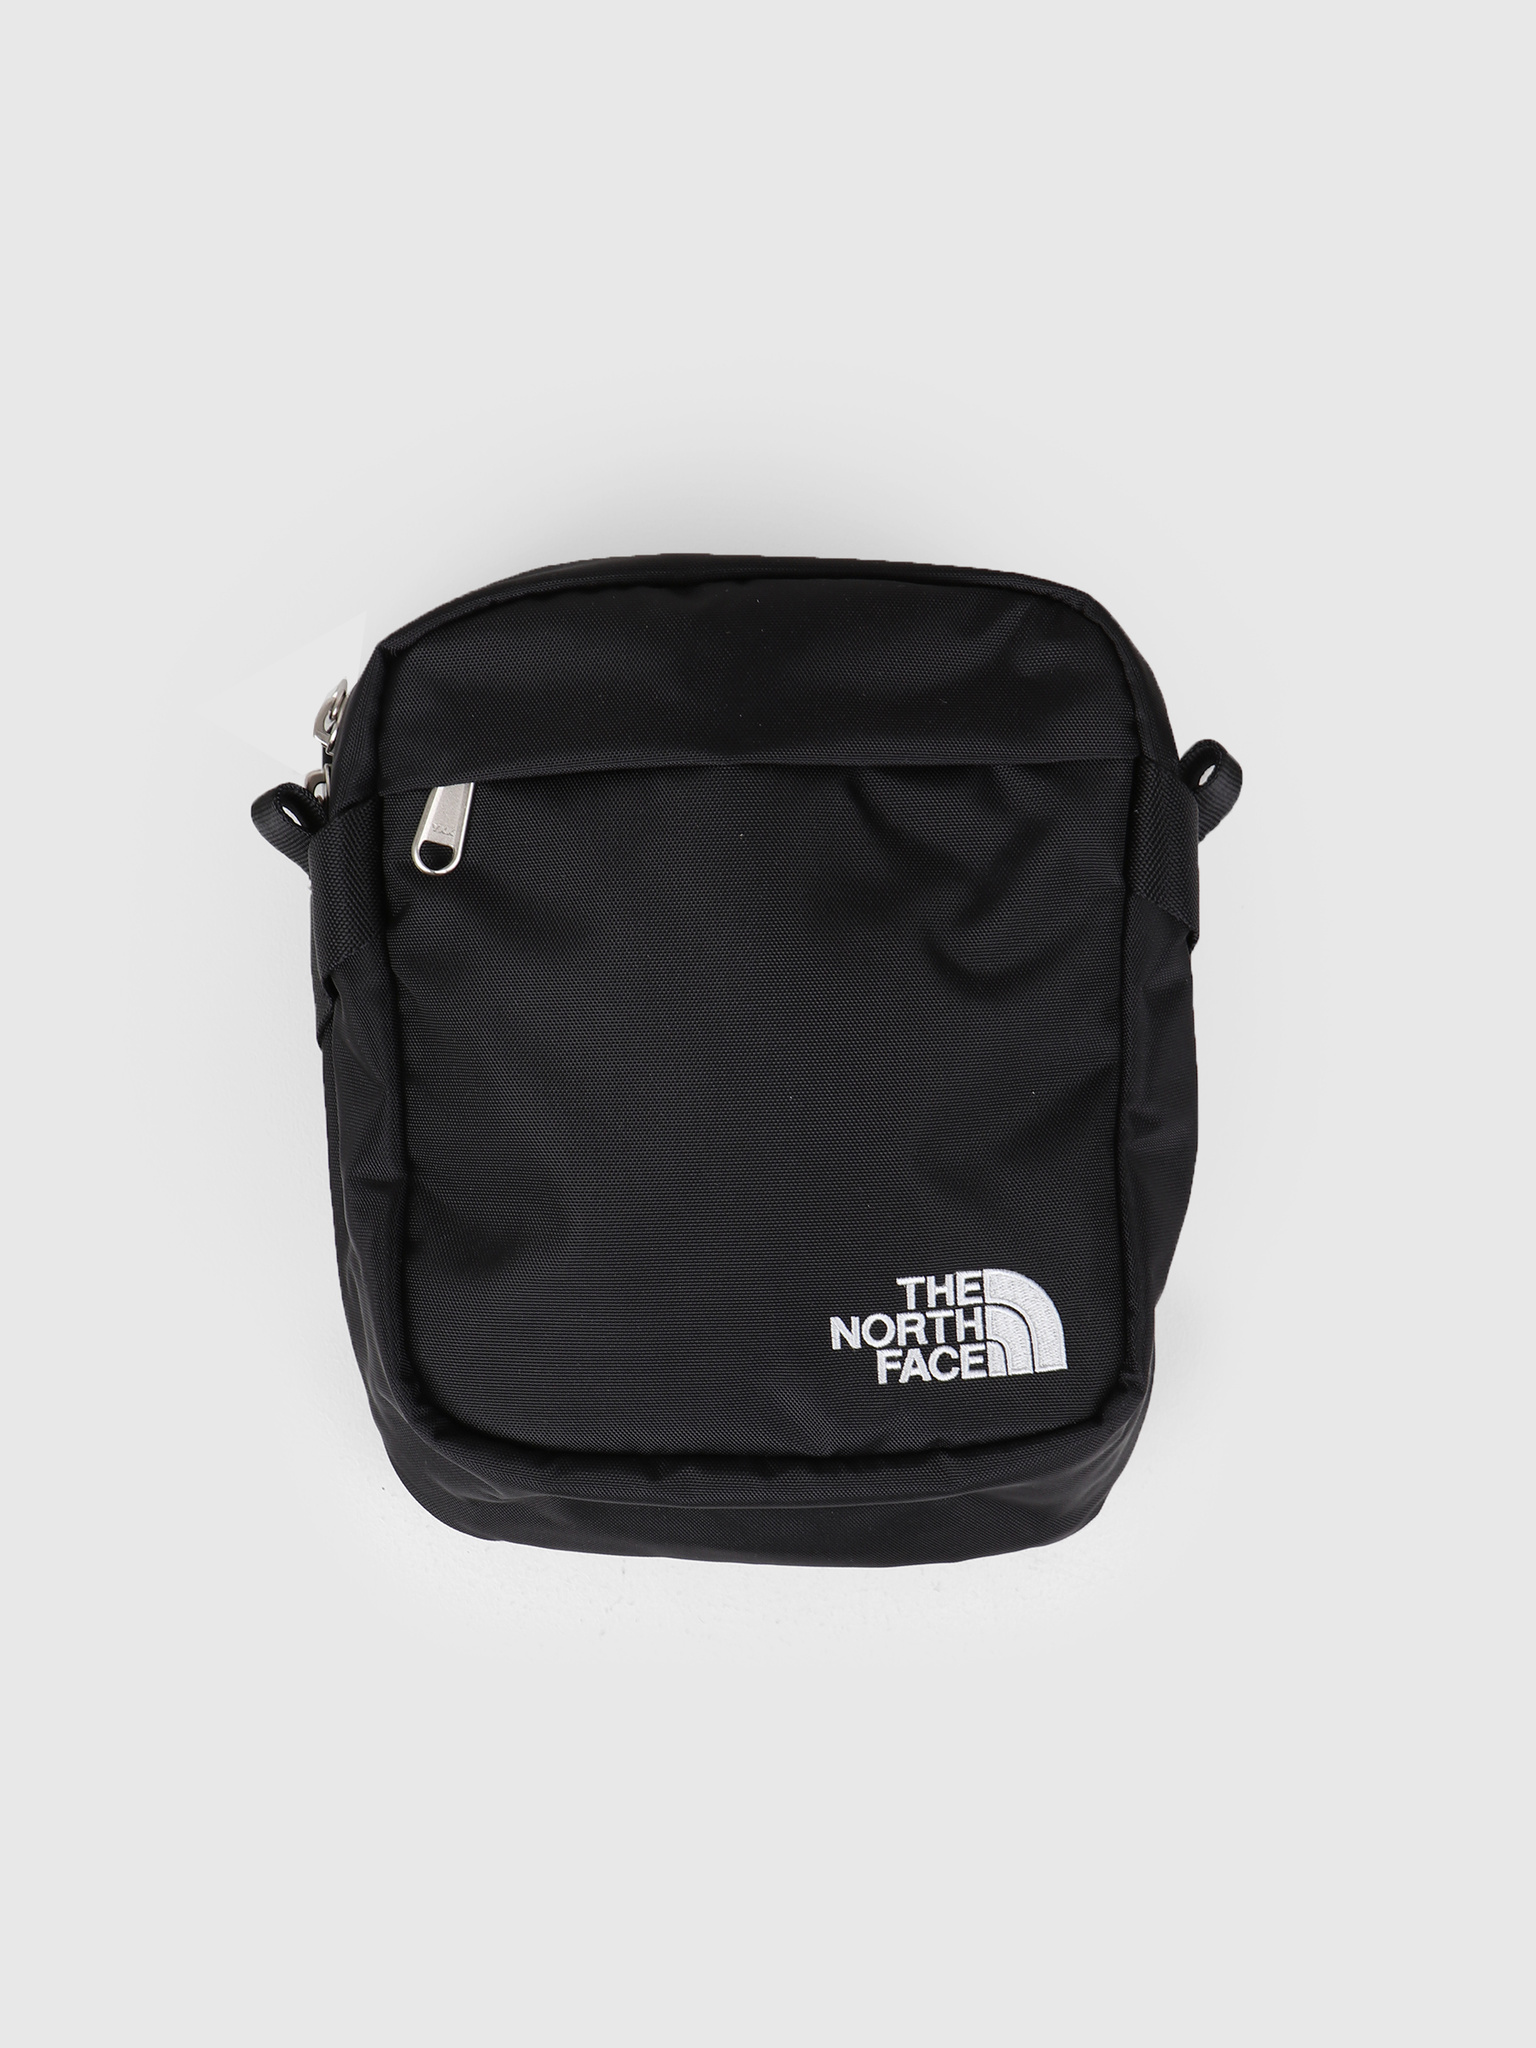 The North Face The North Face Convertible Shoulder Bag TNF Black High Rise Grey T93BXBC4V